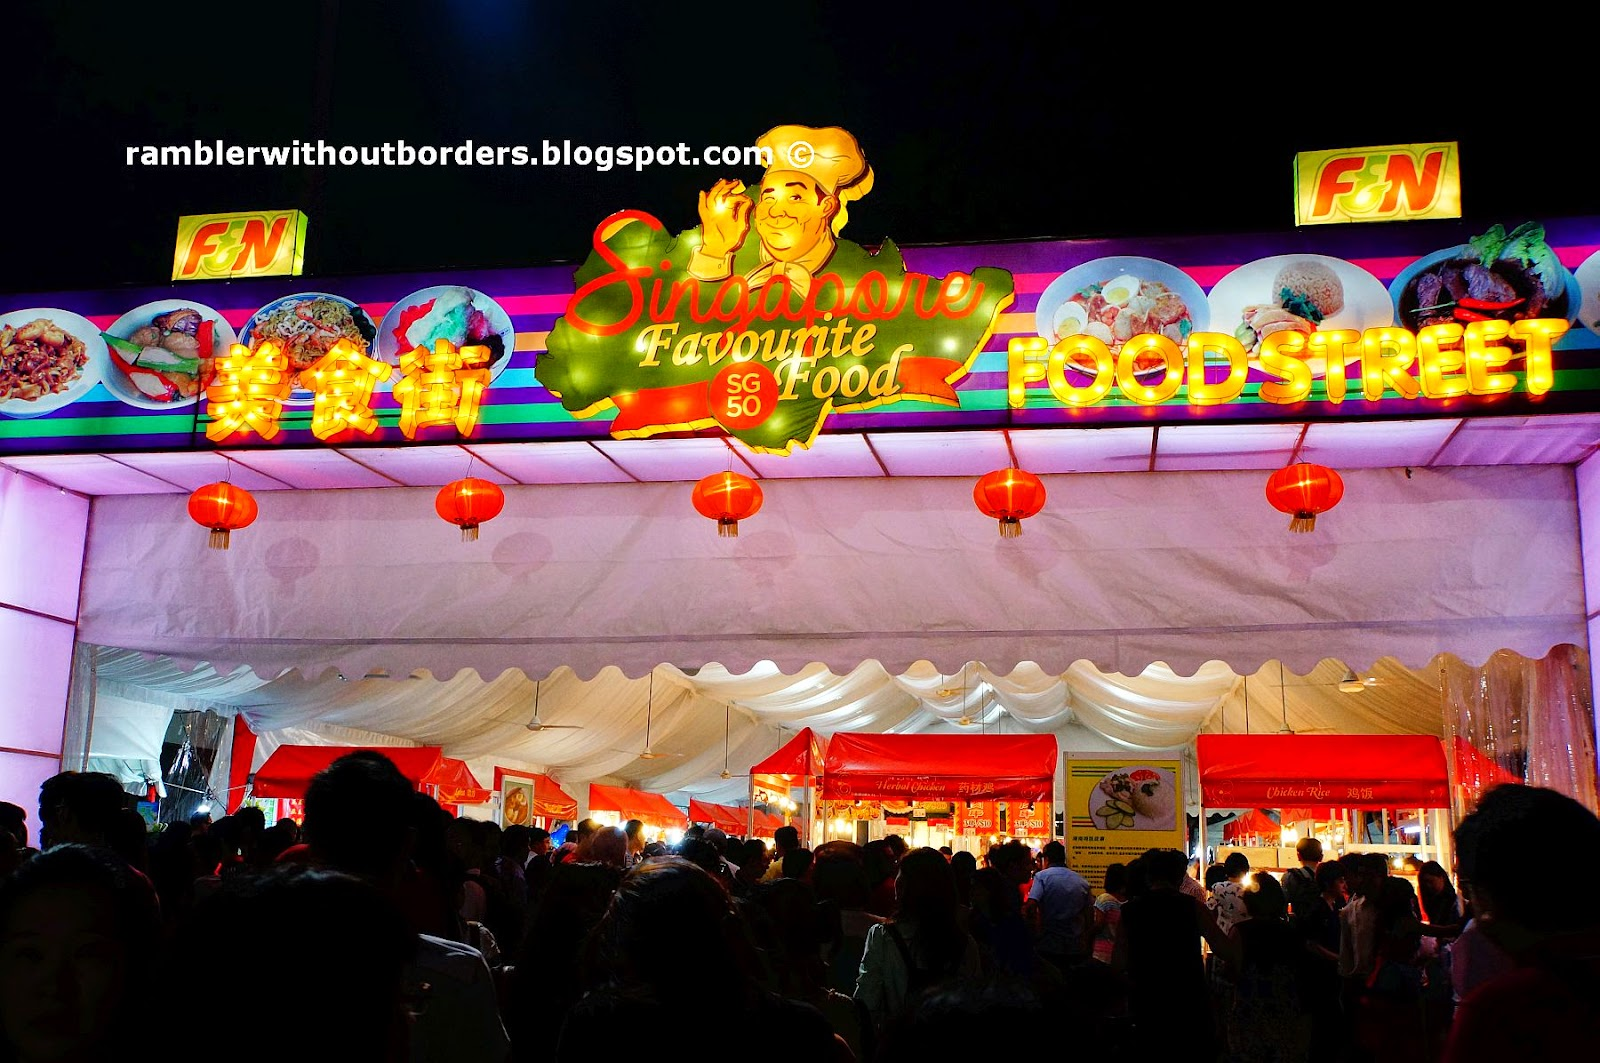 Food Street, River Hongbao, Singapore